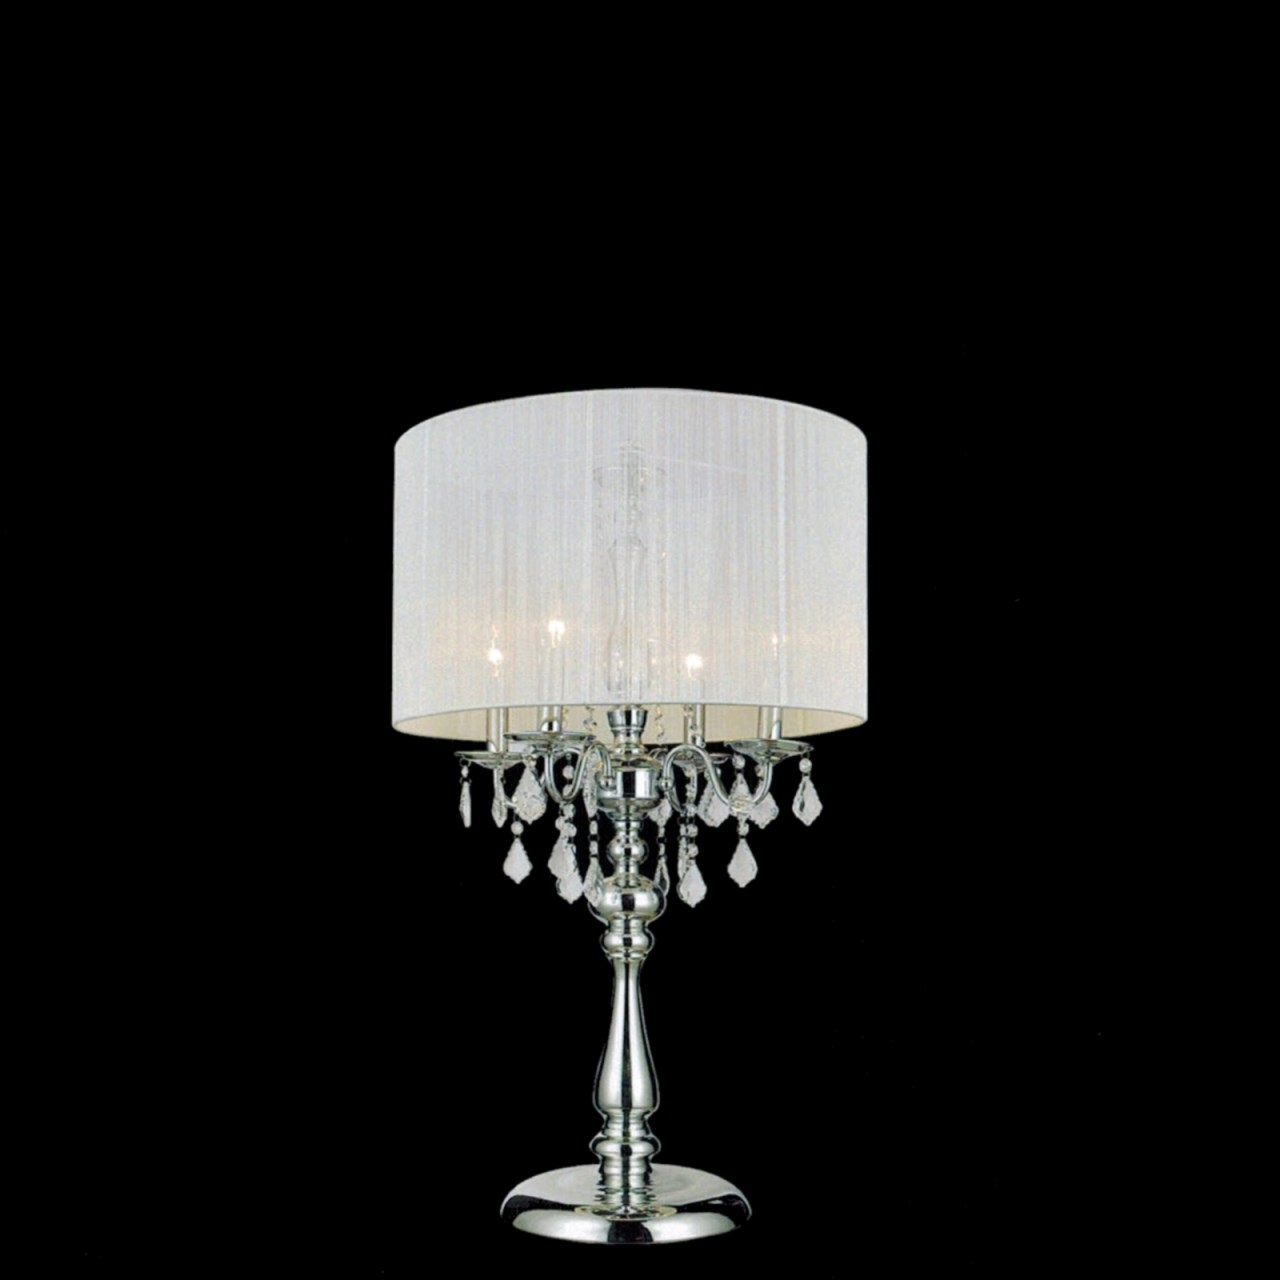 Lamp Shades For Table Lamps Kelly Wearstler Alta Table Lamp Within Mini Chandelier Table Lamps (Image 15 of 25)